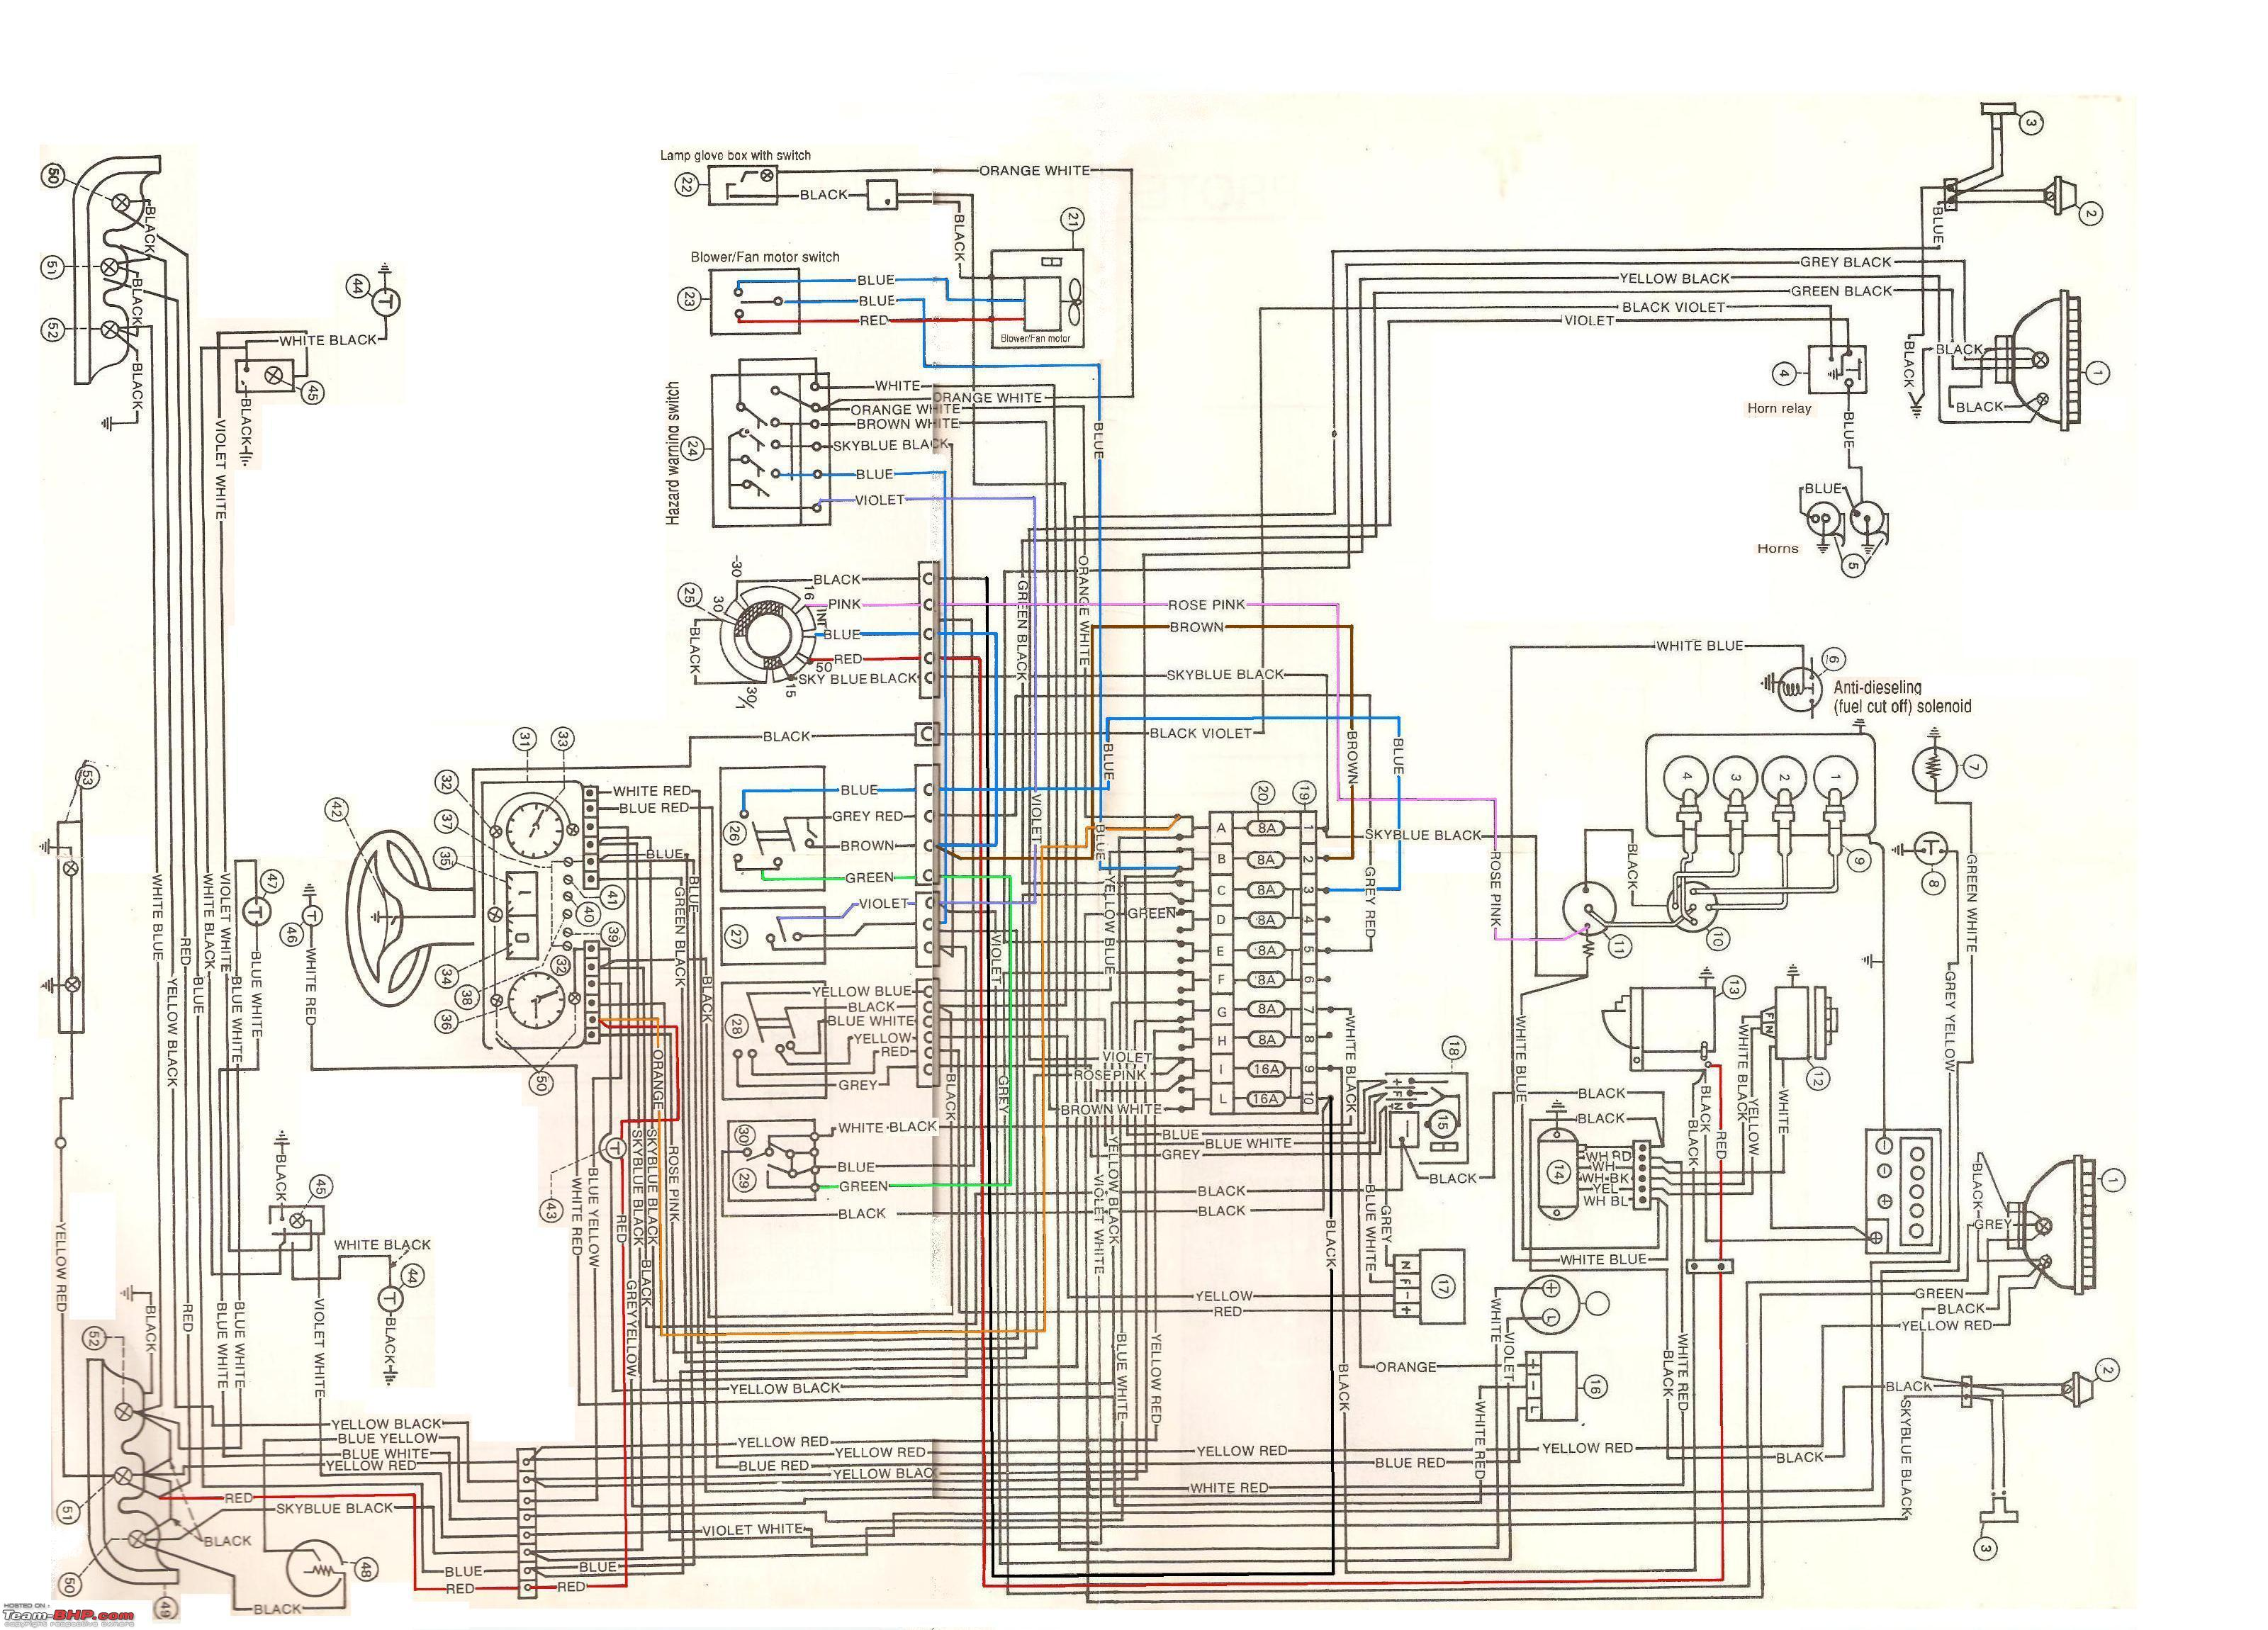 Maruti+800+Wiring+Diagram?td1508149136 suzuki alto wiring diagram suzuki wiring diagrams instruction maruti alto electrical wiring diagram pdf at aneh.co